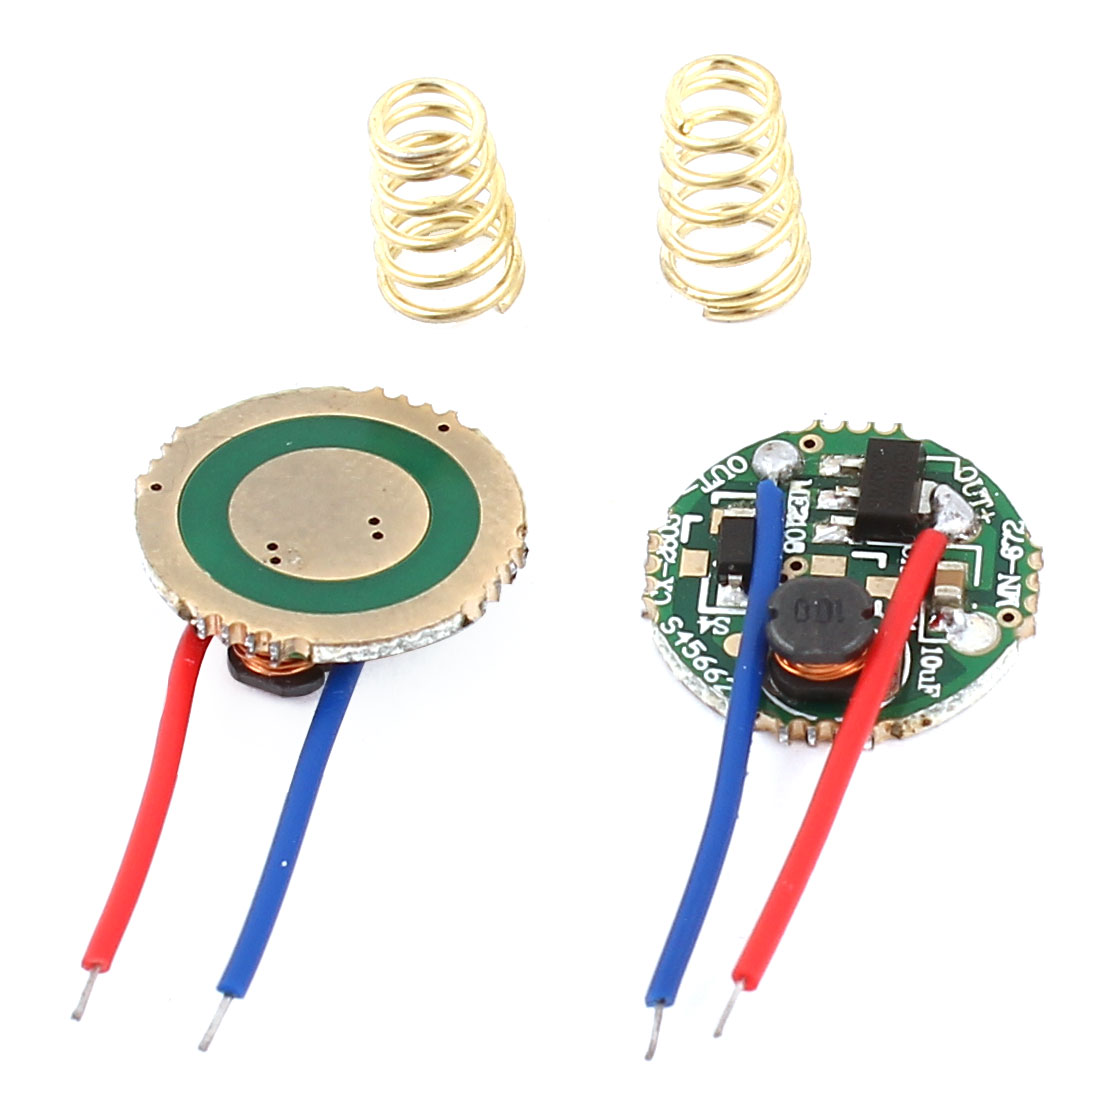 DIY Flashlight Torch 2 Wires 1-Mode Q5 LED Driver Circuit Board 15mm Dia 2pcs